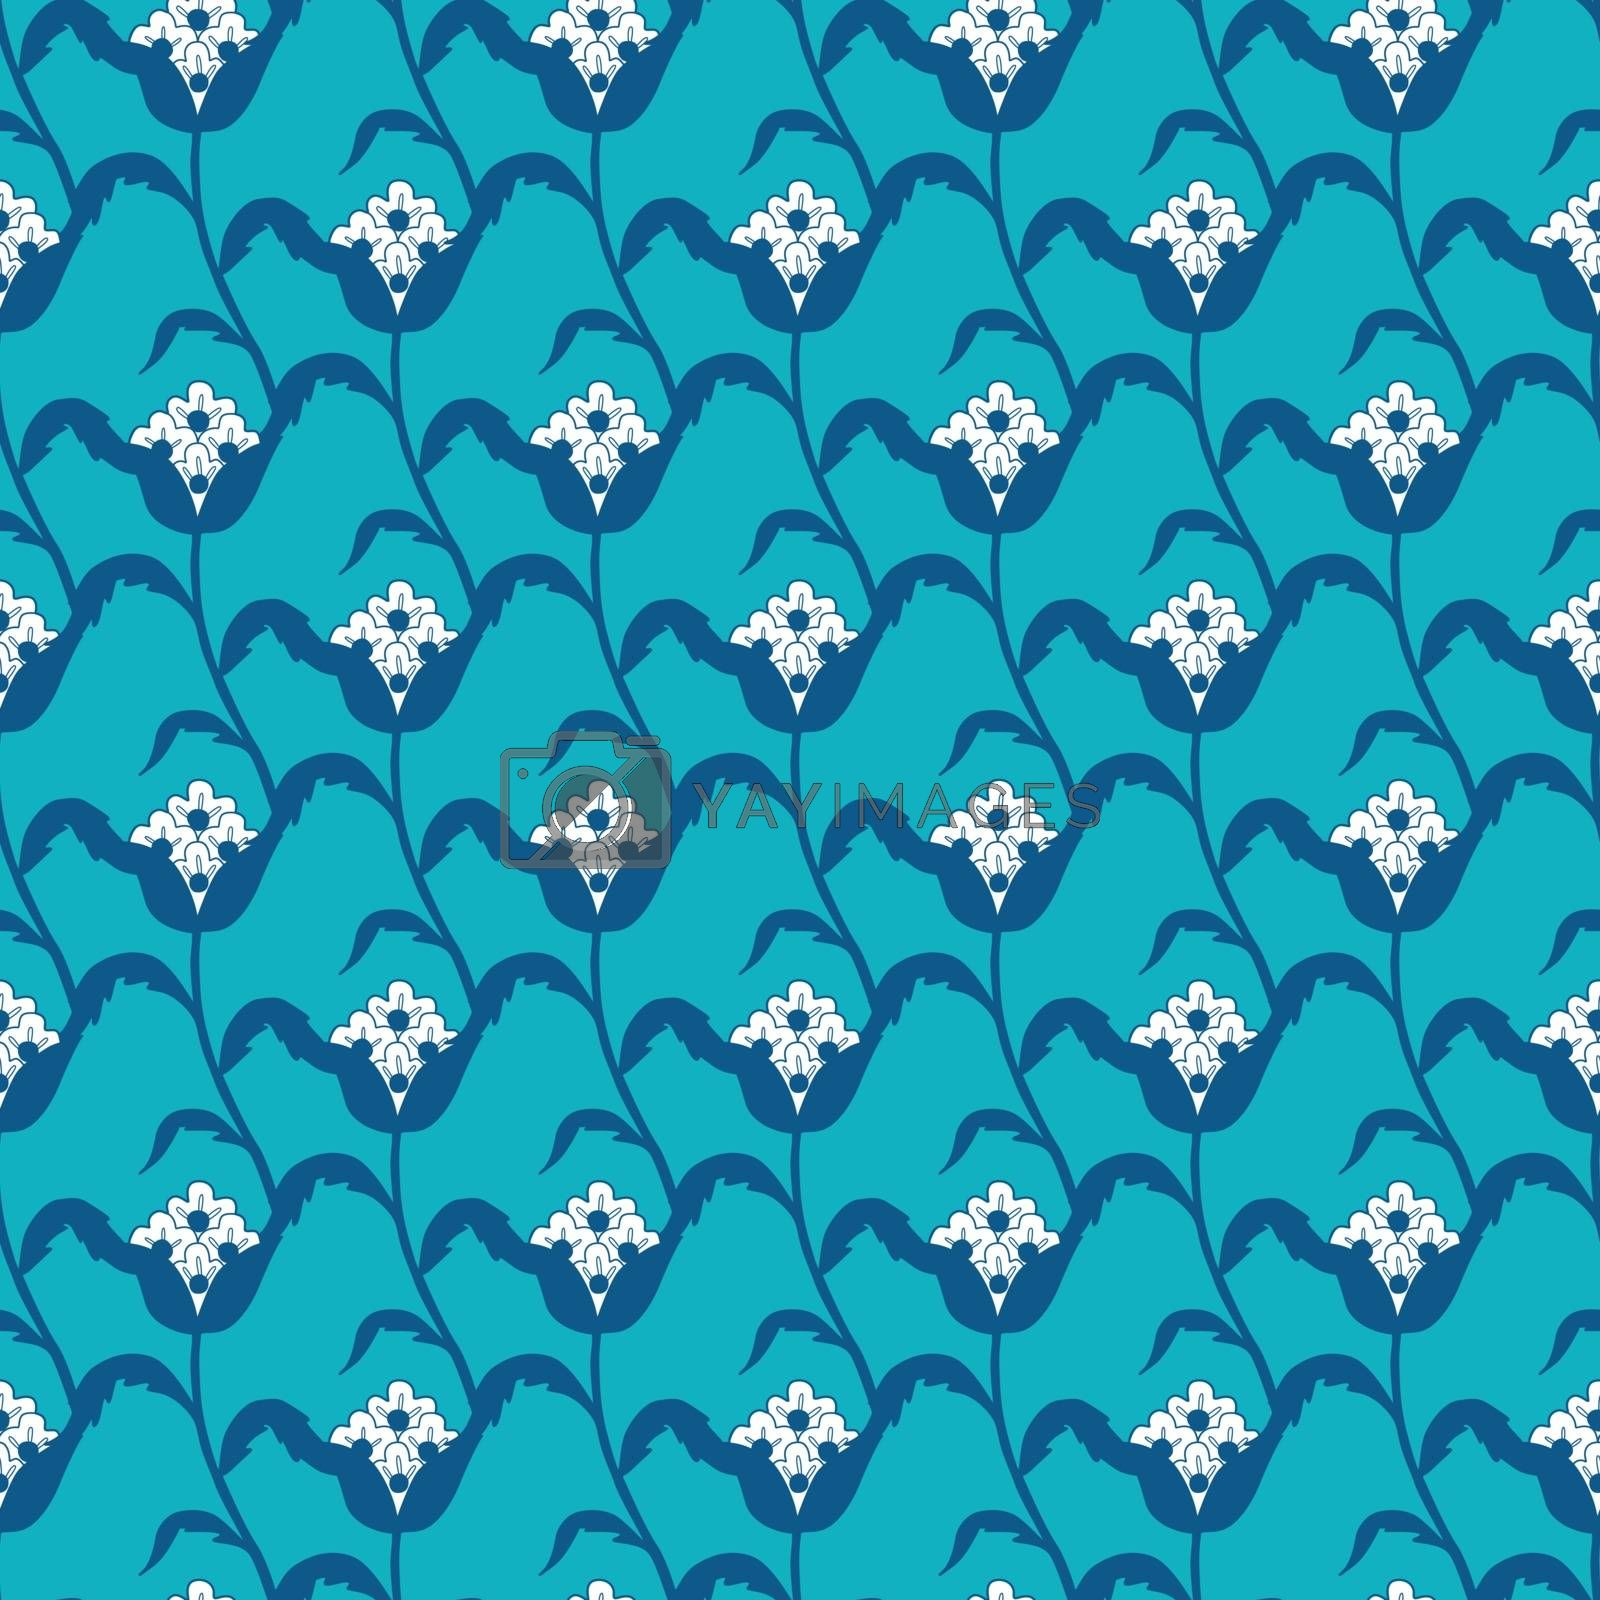 Vector Blue White Stylized Flowers Geometric Seamless Pattern graphic design